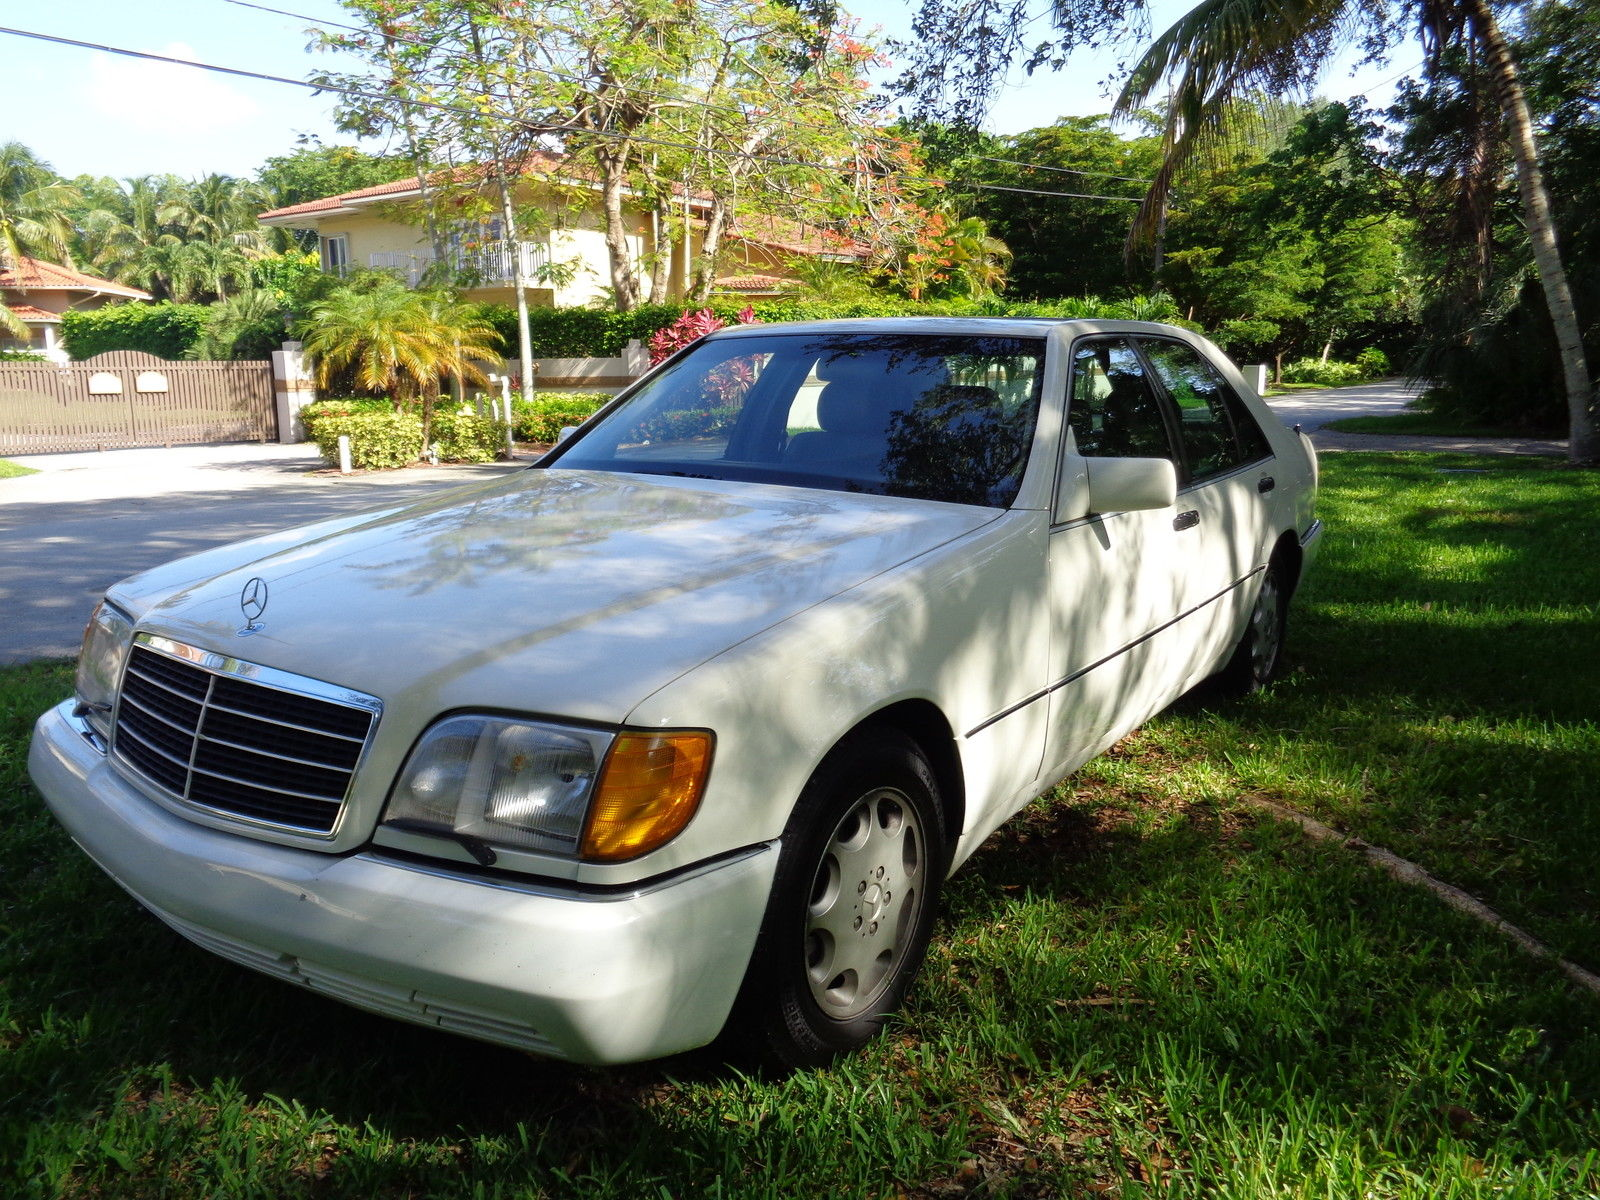 Rare 93 mercedes benz 300sd s350 turbo diesel ice cold air for 1993 mercedes benz 300sd